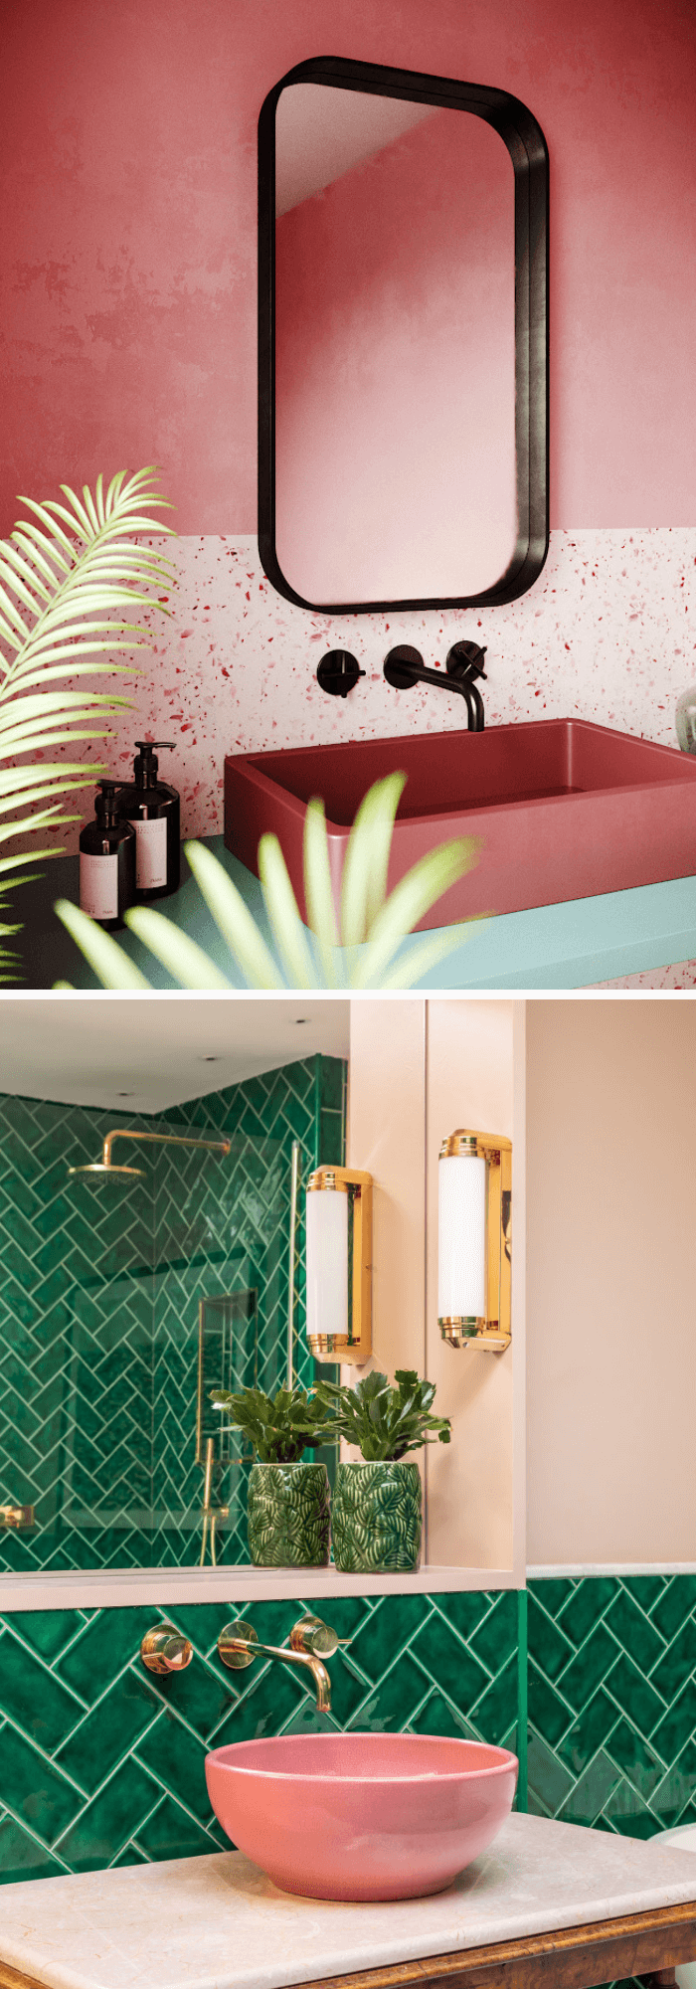 Colorful bathroom sinks